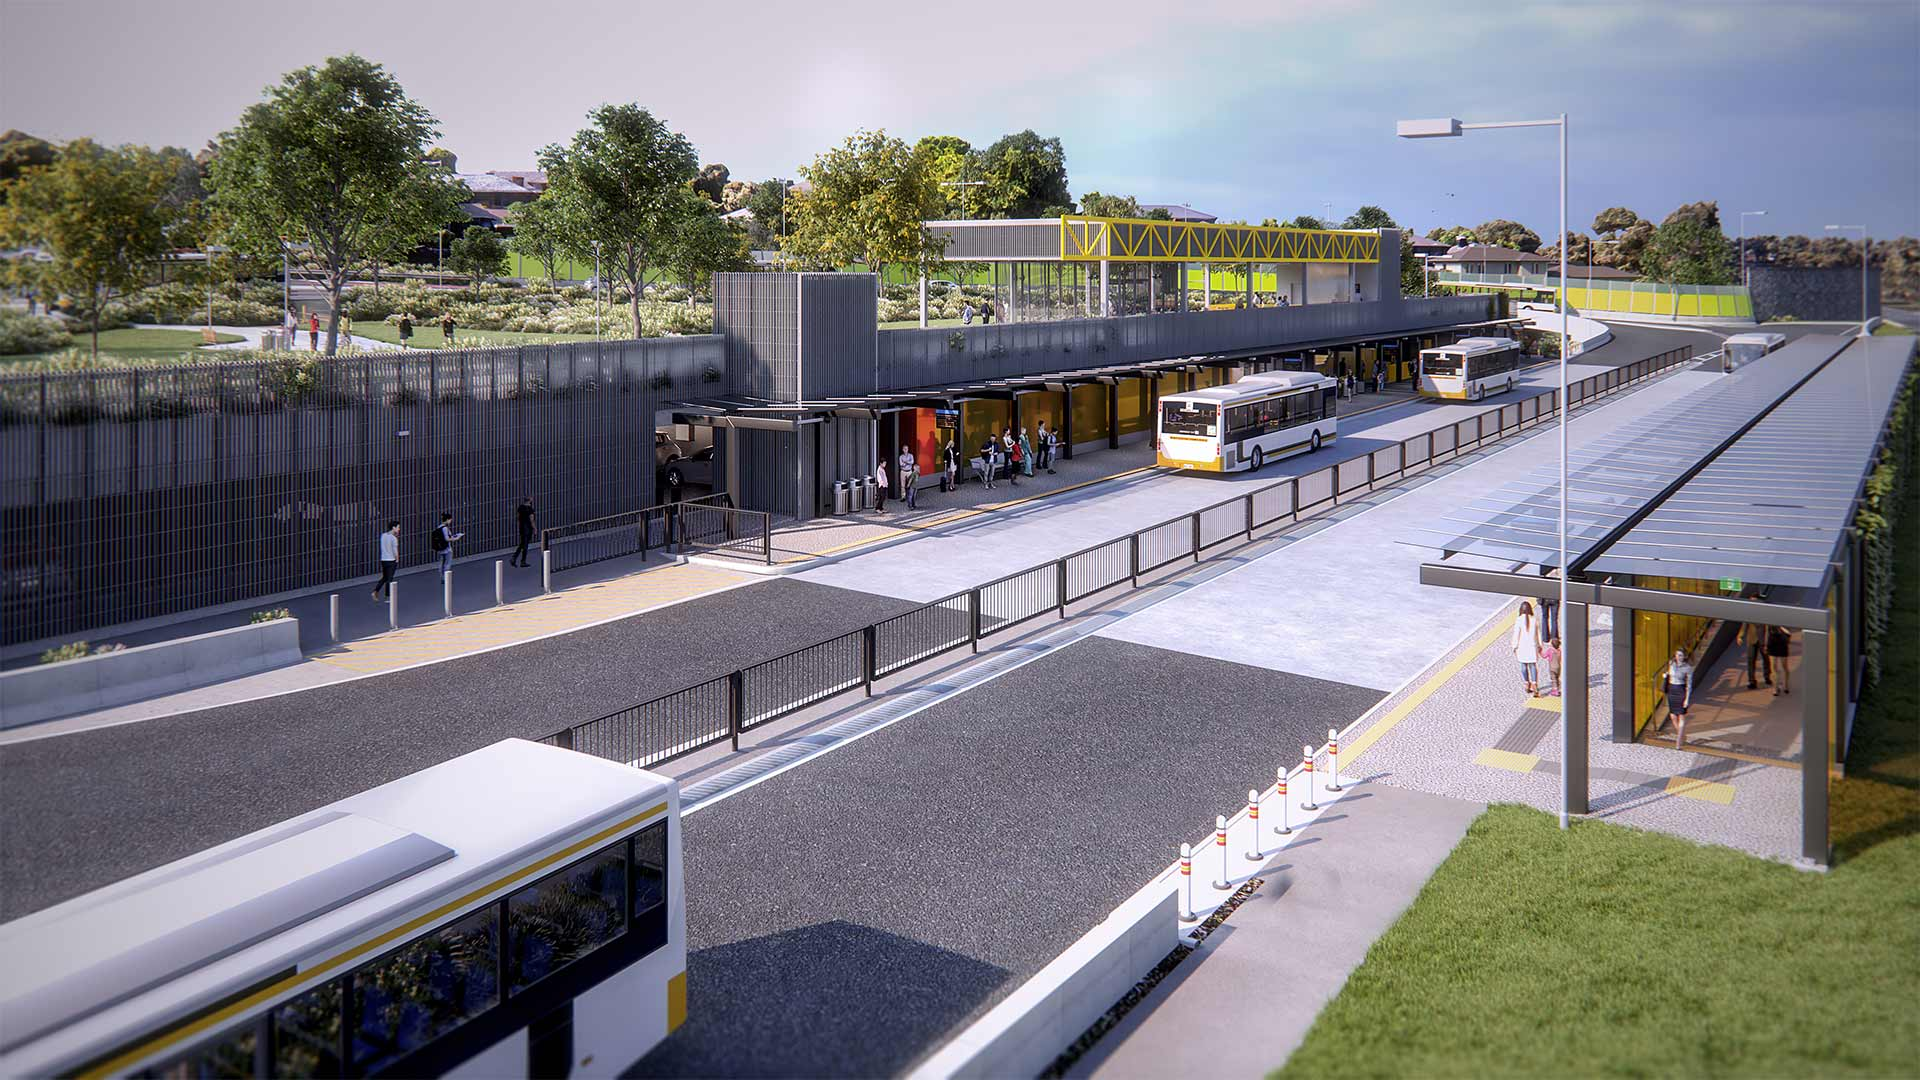 Artist impression that shows view above the Bulleen Park and Ride, showing buses on road and people in and around platforms and view of park in the top left.